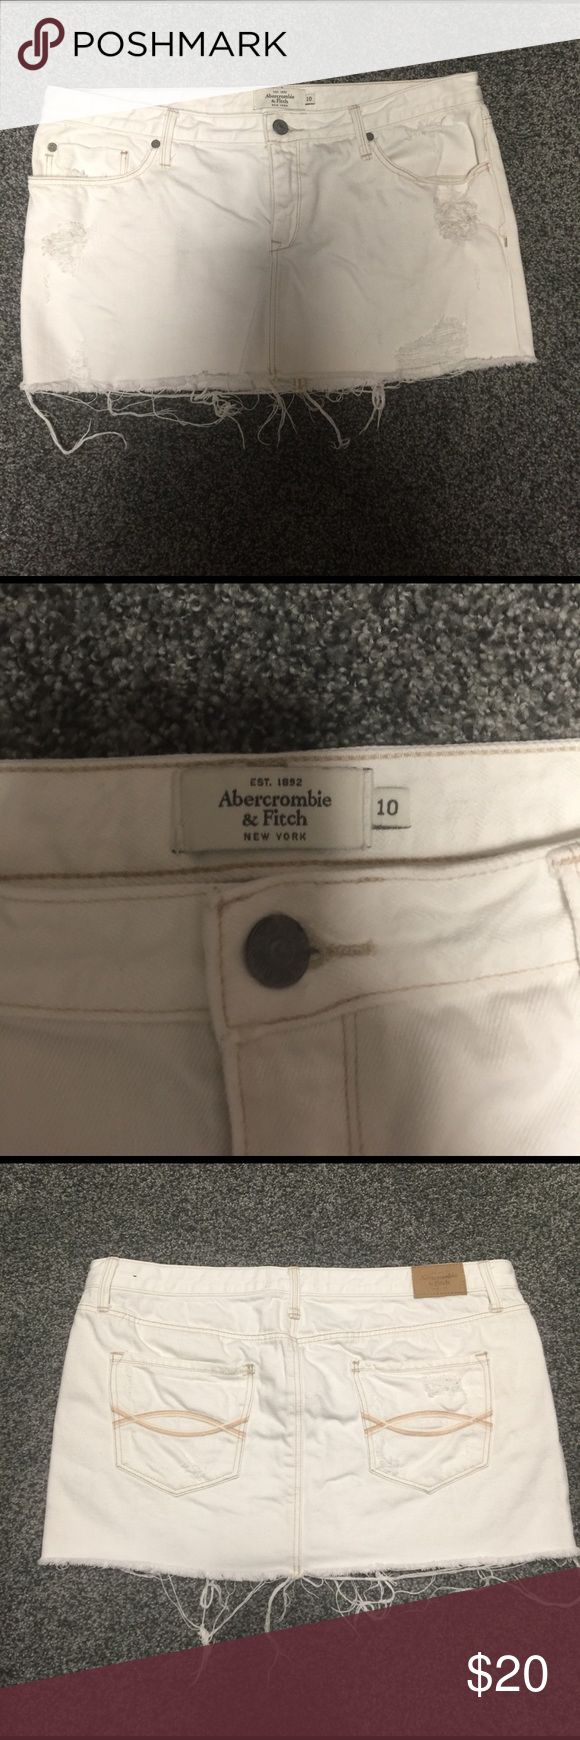 Abercrombie and fitch skirt White distressed denim skirt in excellent condition only worn 1-2 times. Abercrombie & Fitch Skirts Mini